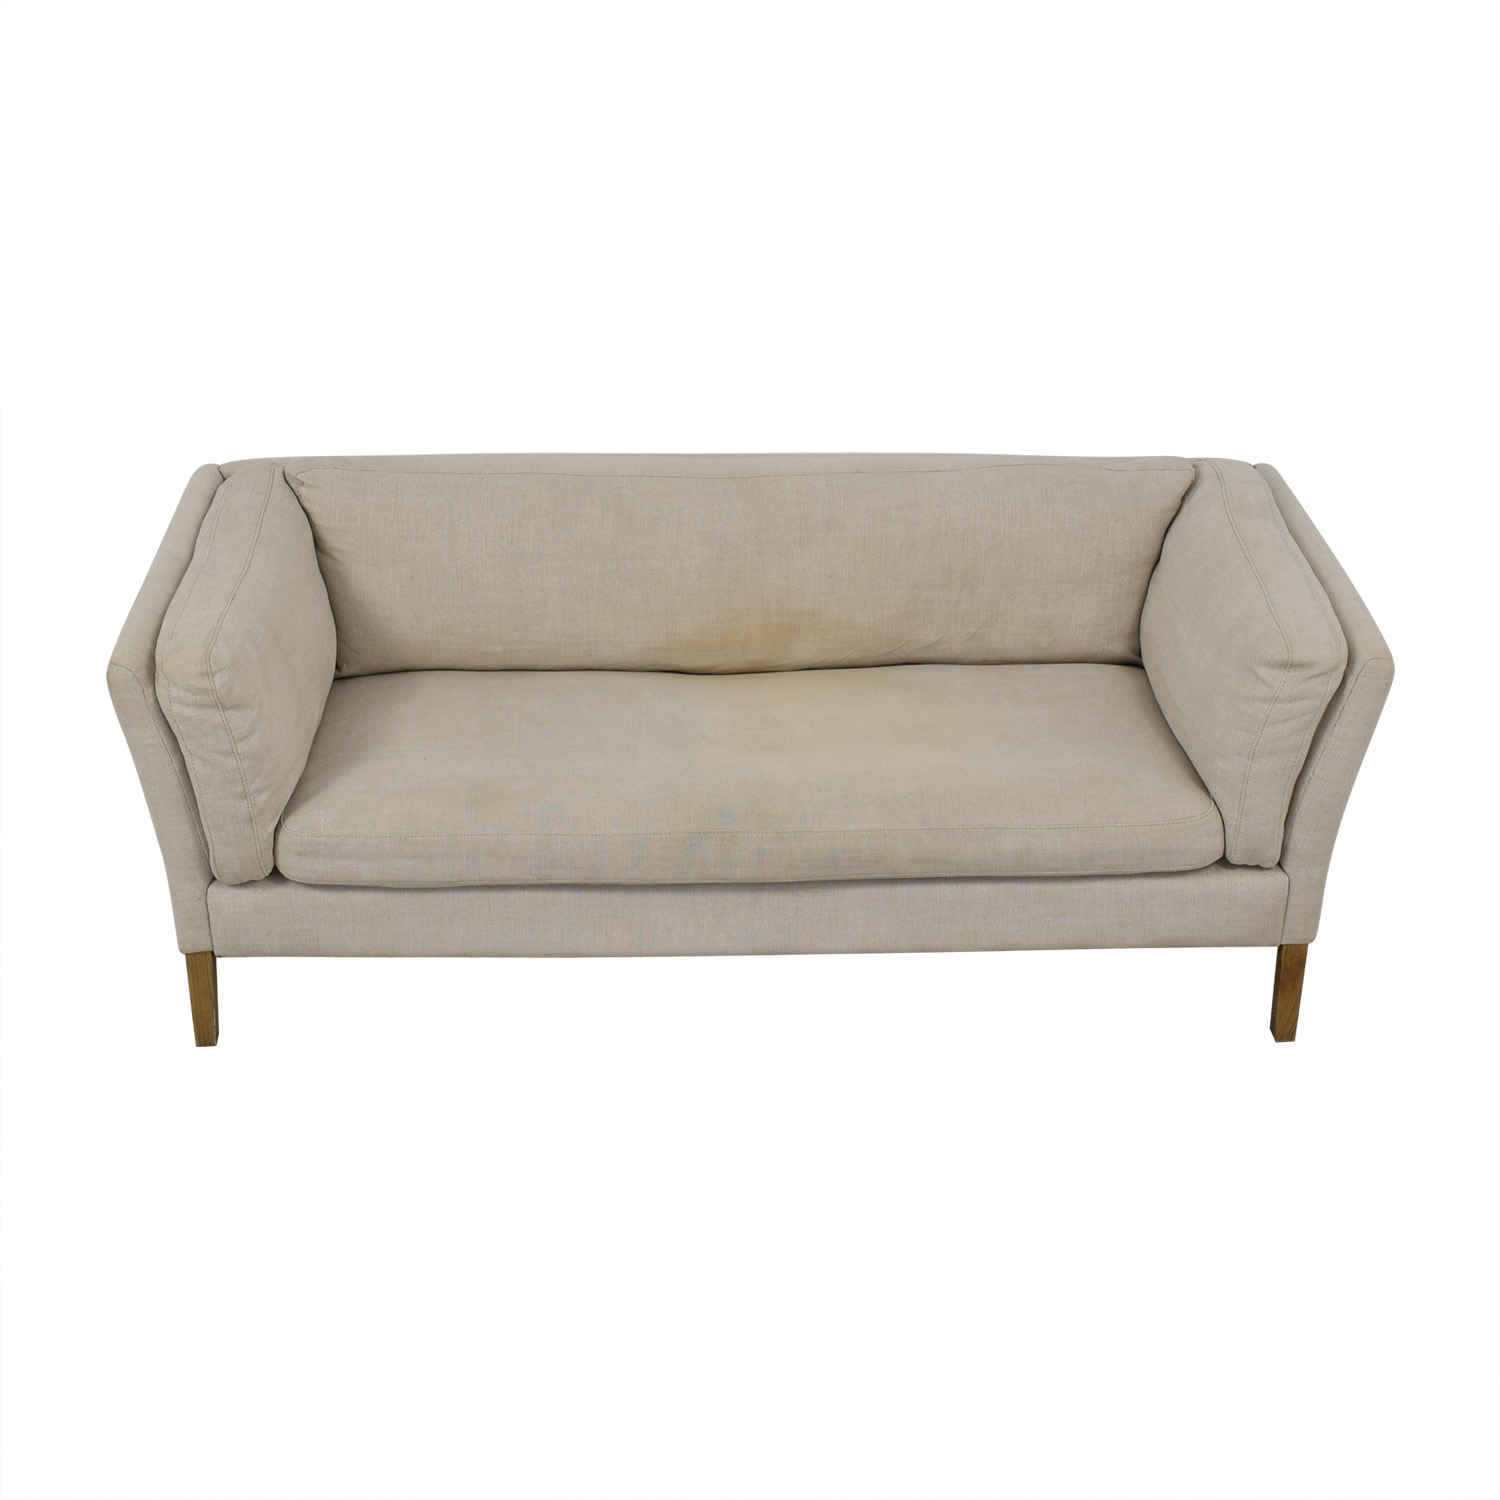 Restoration Hardware Restoration Hardware Sorensen Sofa in Belgian Natural Linen for sale